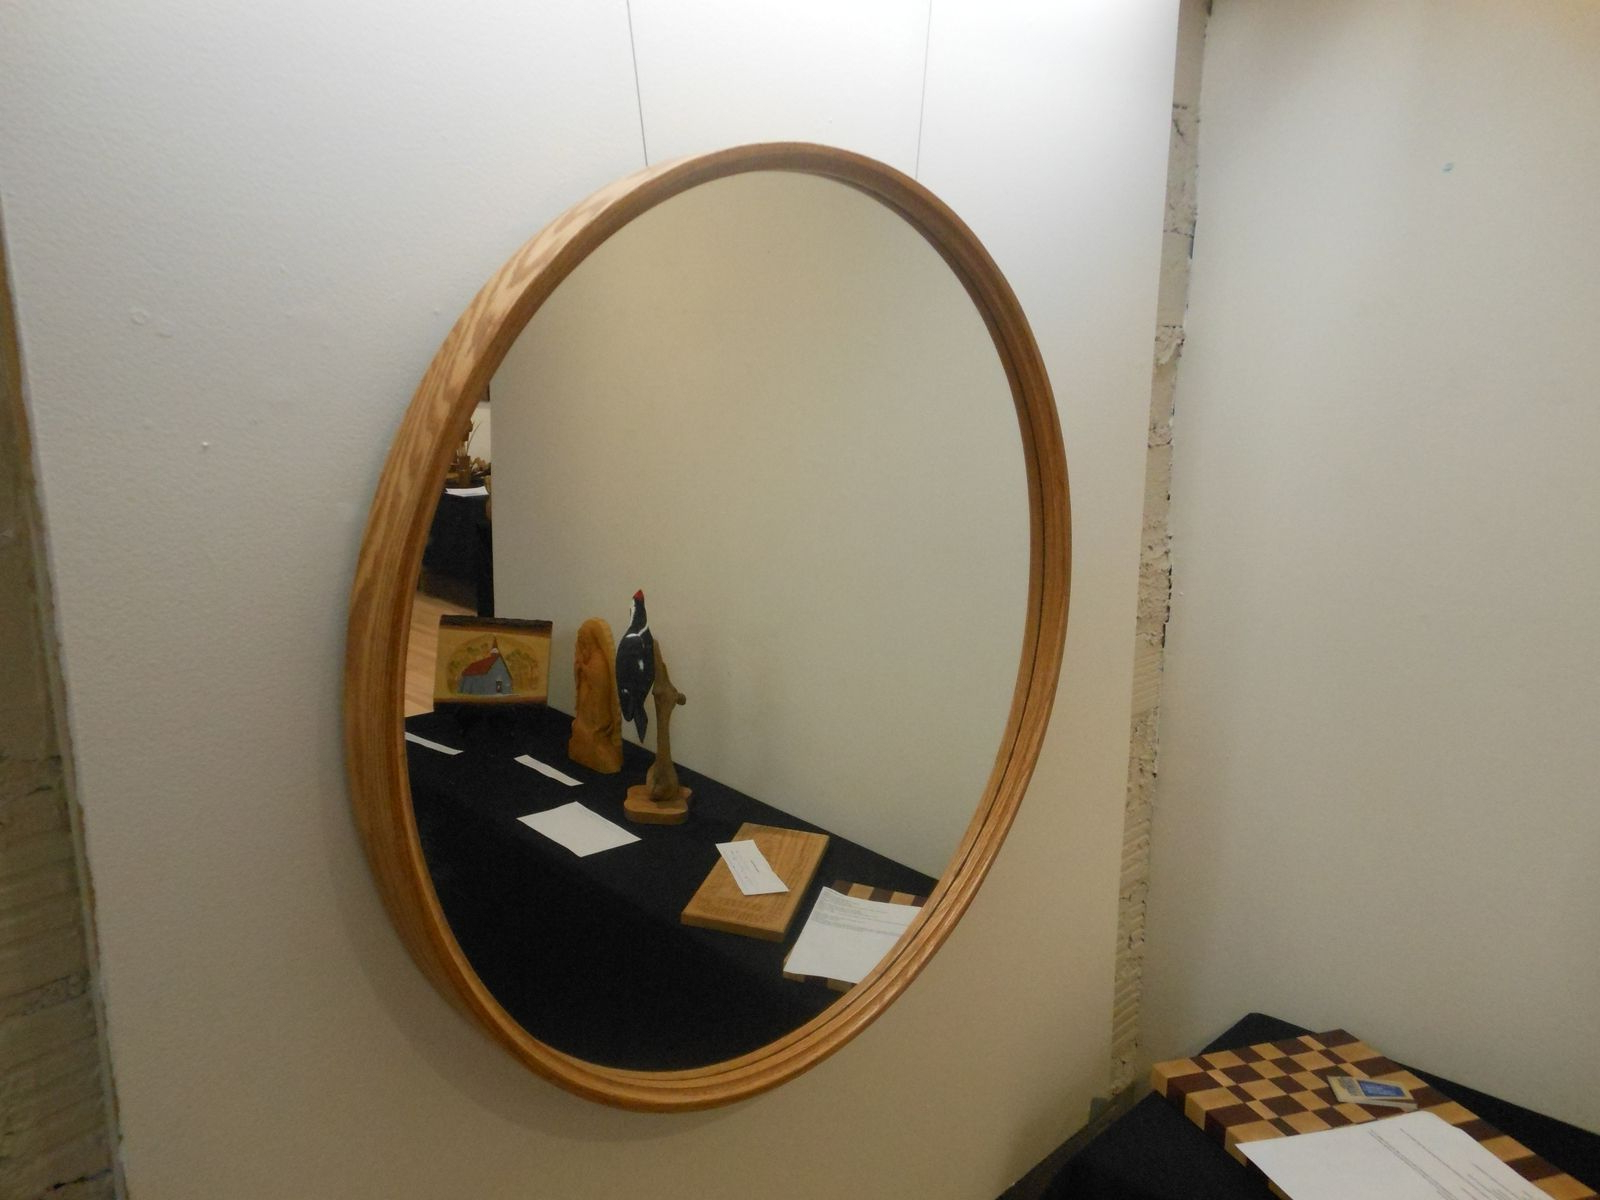 Widely Used Large Wall Mirrors With Wood Frame In Large Round Mirror With Wood Frame Designs 42 Inches Mirrors (View 18 of 20)